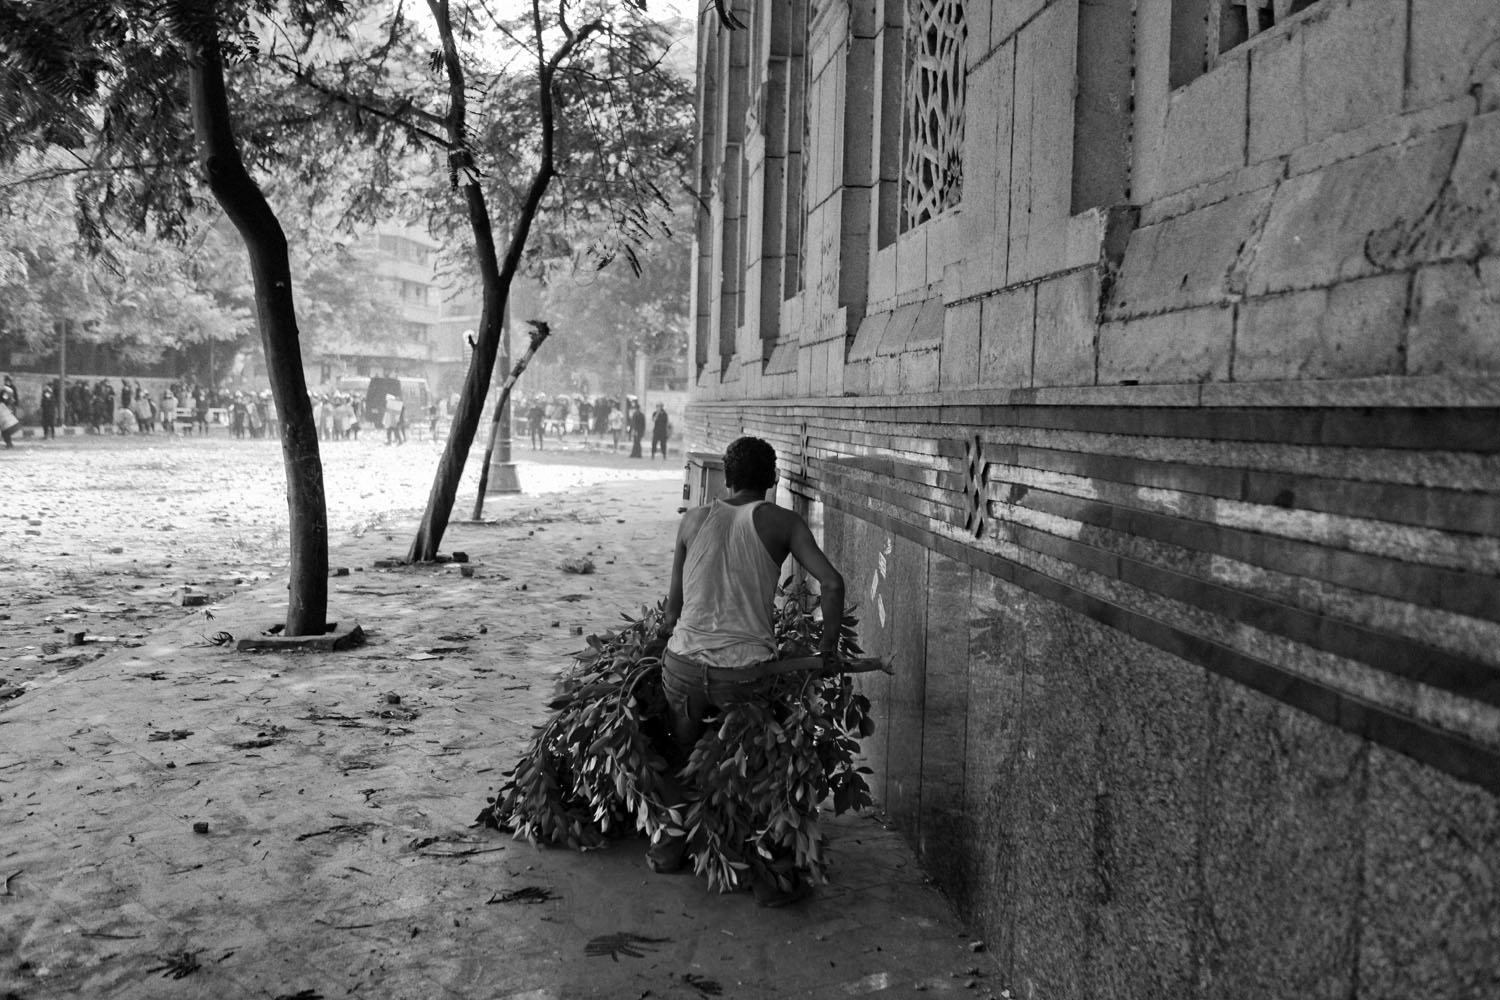 A protestor uses the branch of a tree as cover.